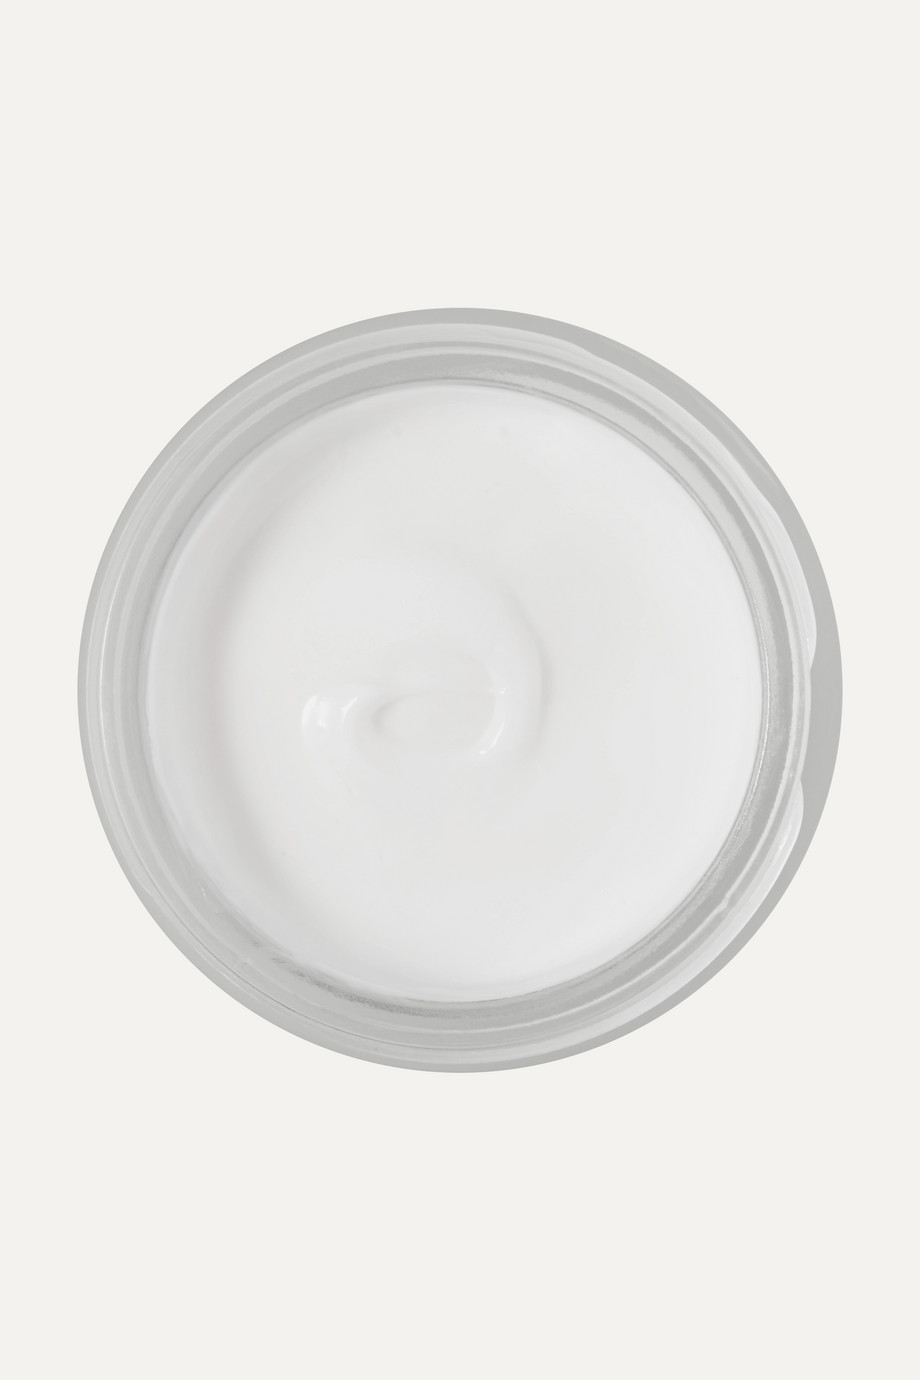 Omorovicza Firming Neck Cream, 50ml